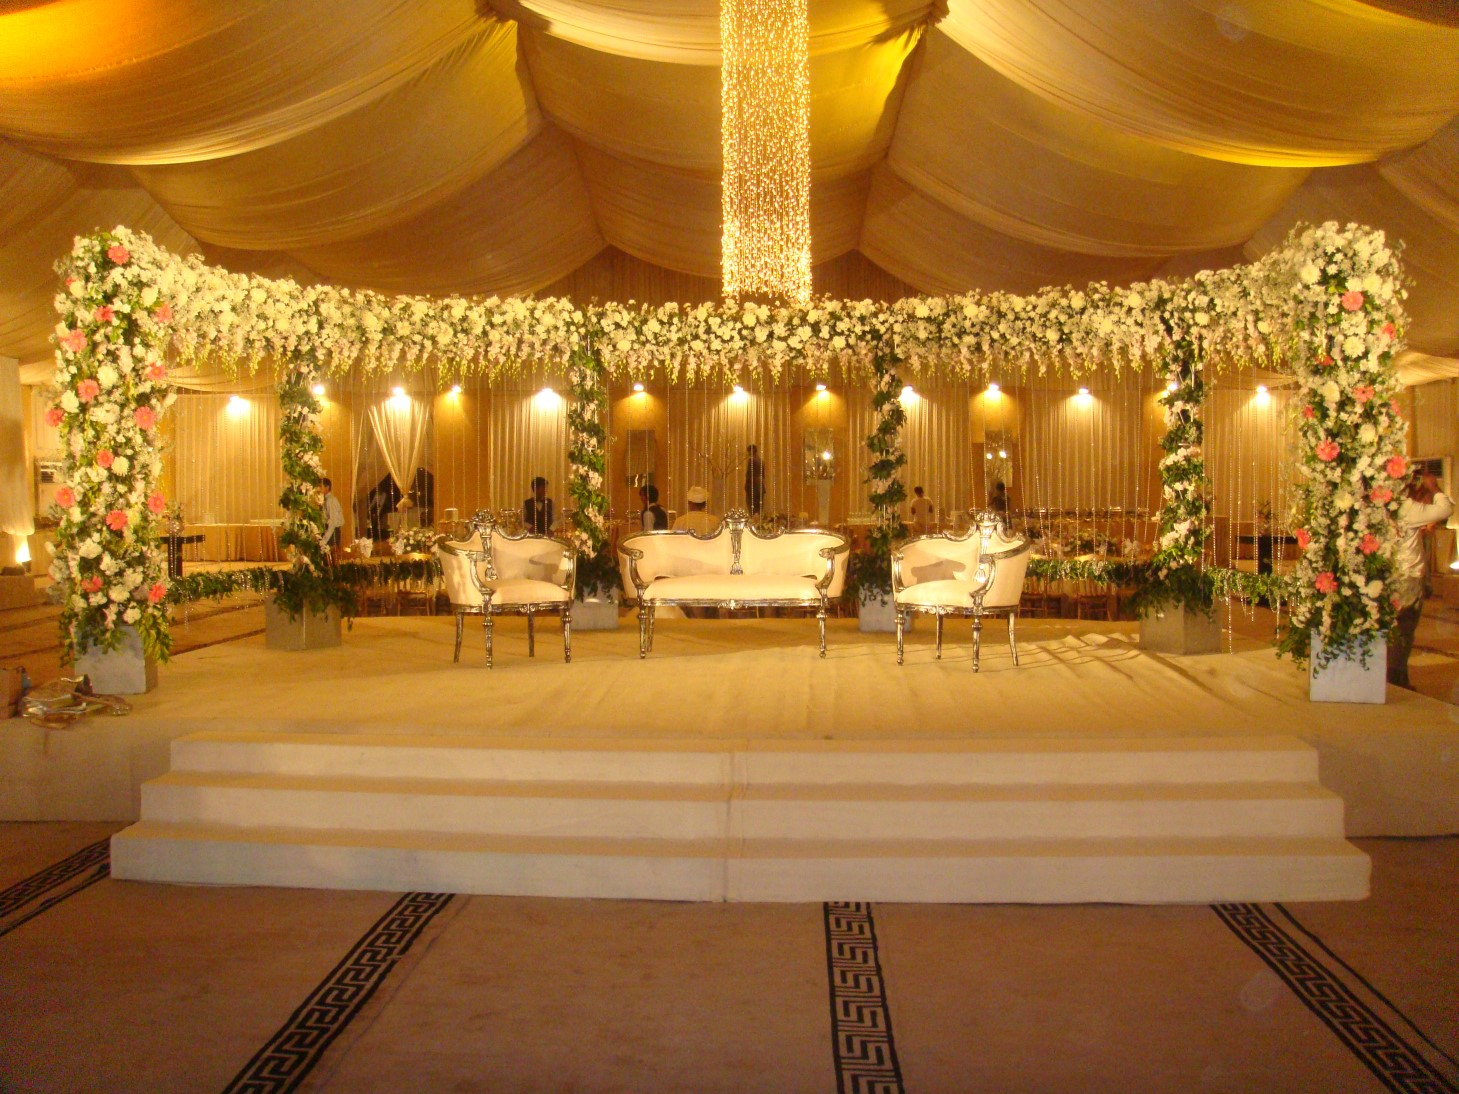 Wedding stage decoration designs wedding decor wedding stage wedding stage decoration designs about marriage marriage decoration photos 100 marriage stage 80 junglespirit Gallery